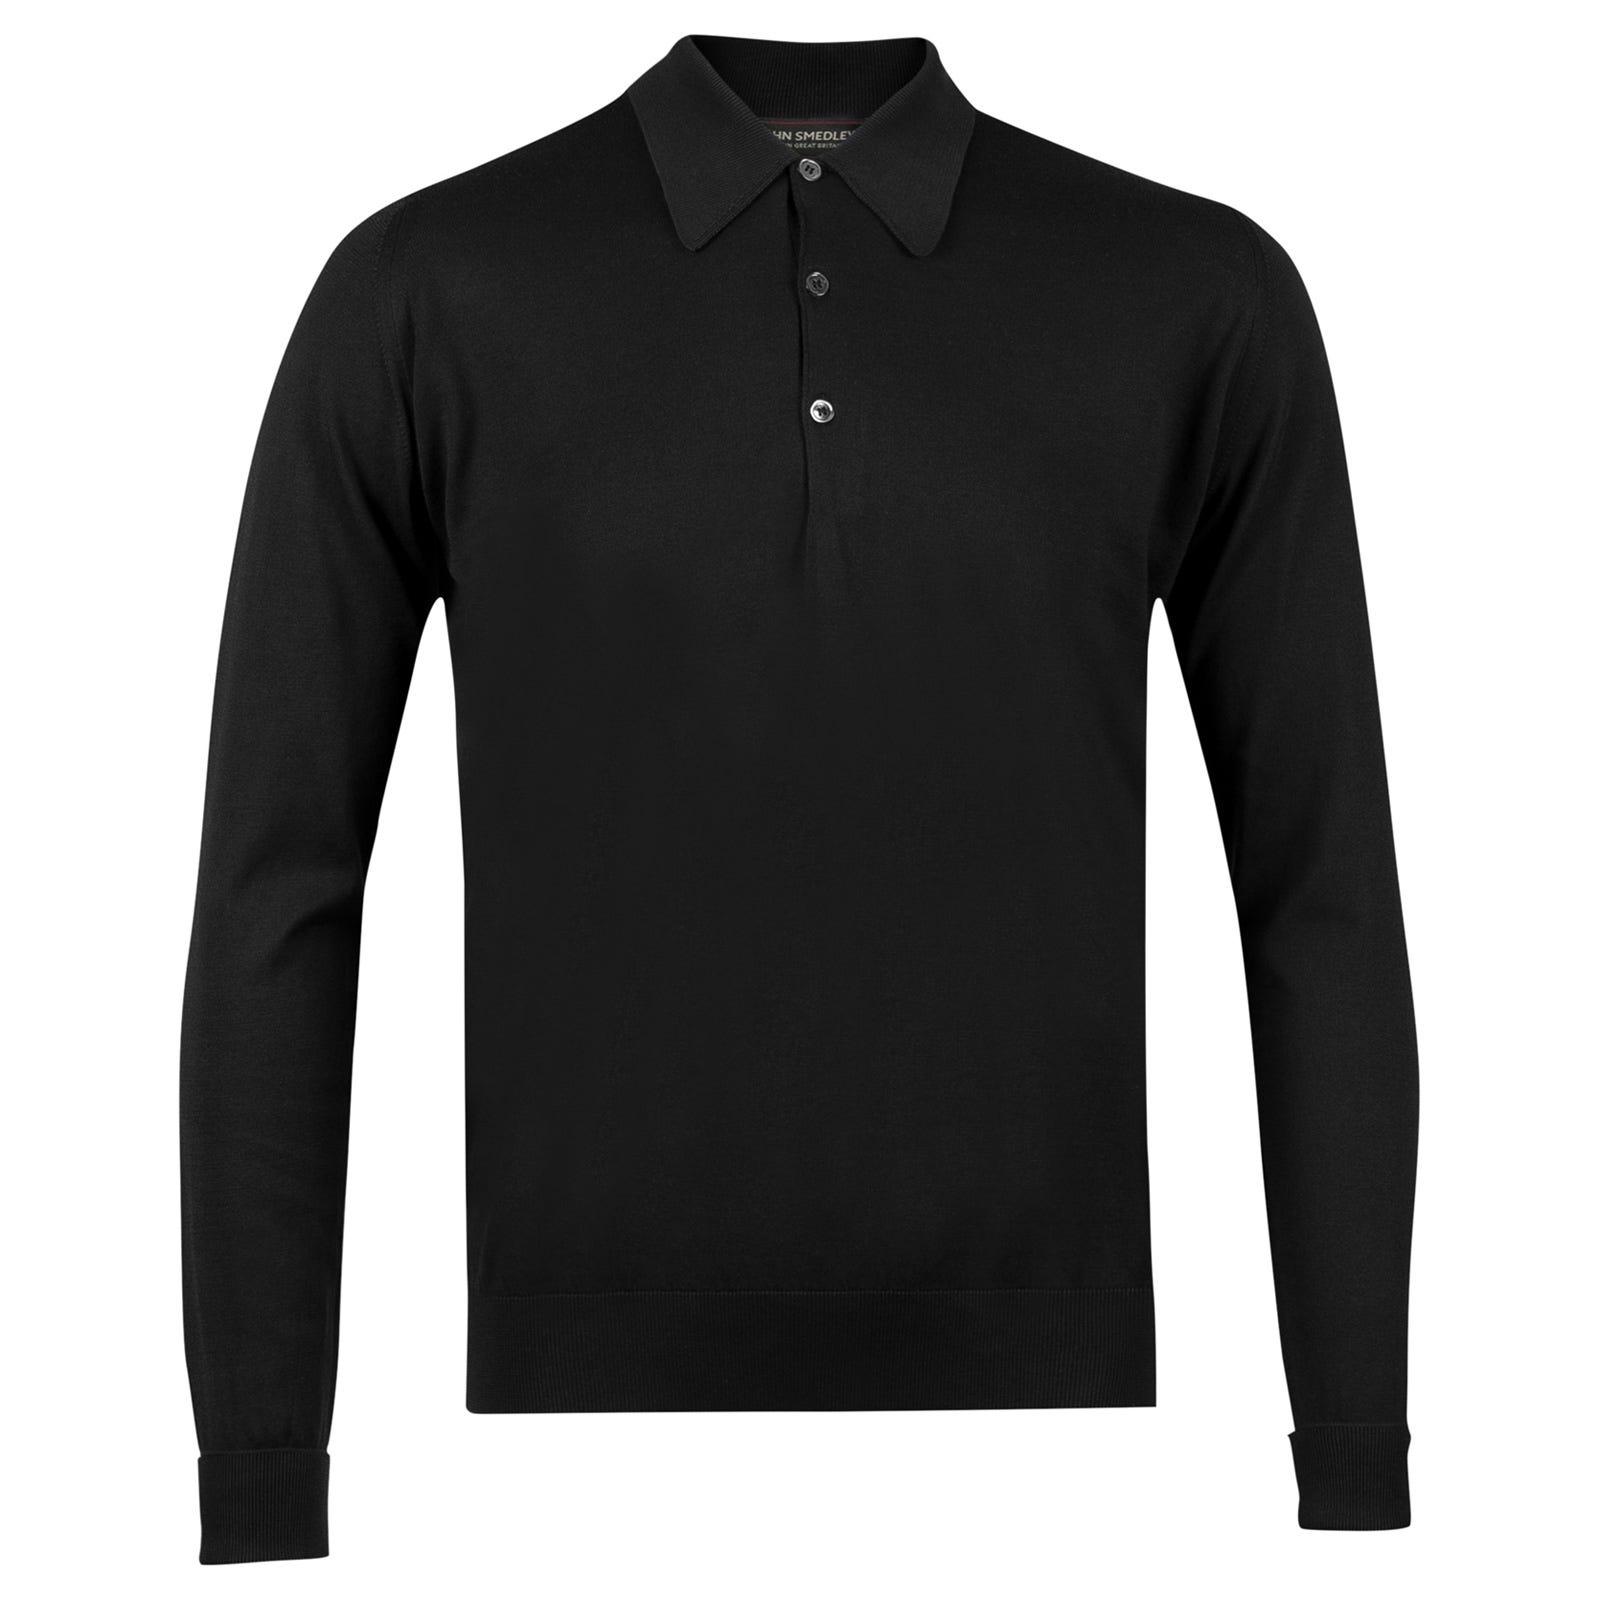 John Smedley finchley Sea Island Cotton Shirt in Black-XS